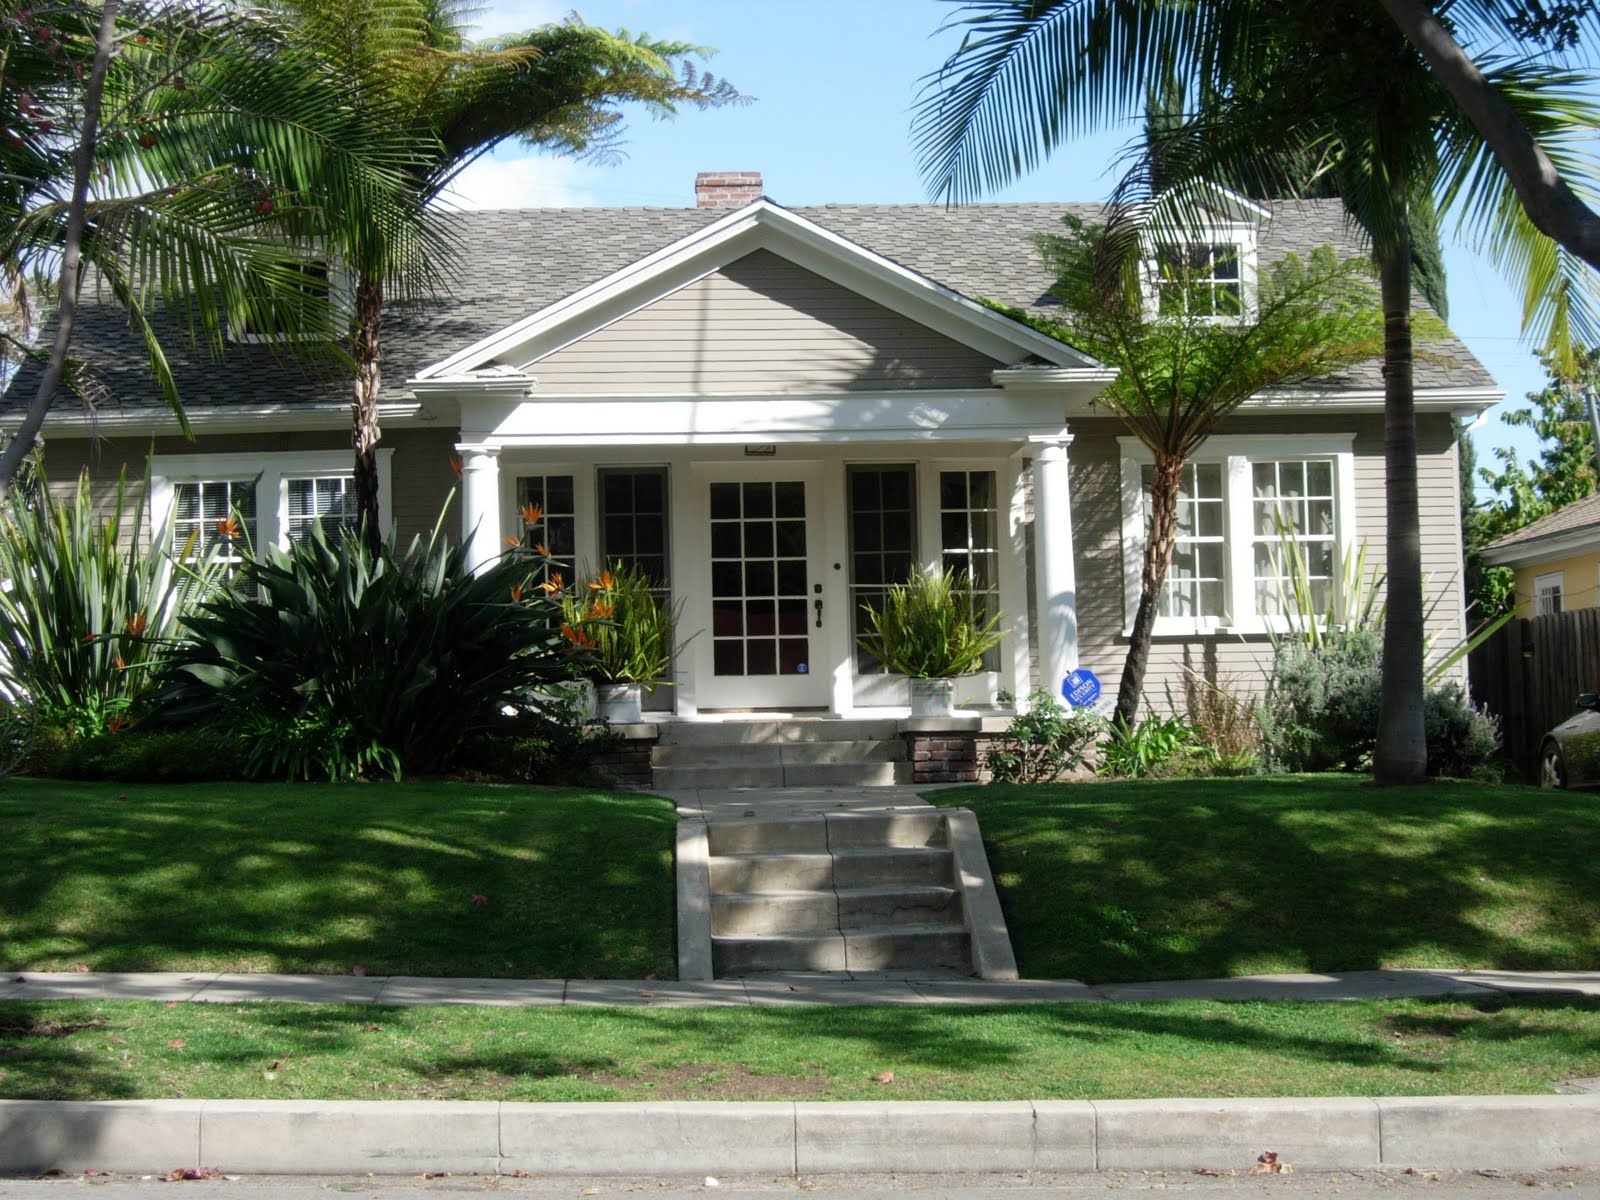 Vintage Hollywood Homes lucille ball's first home - 1344 n. ogdon drive, west hollywood